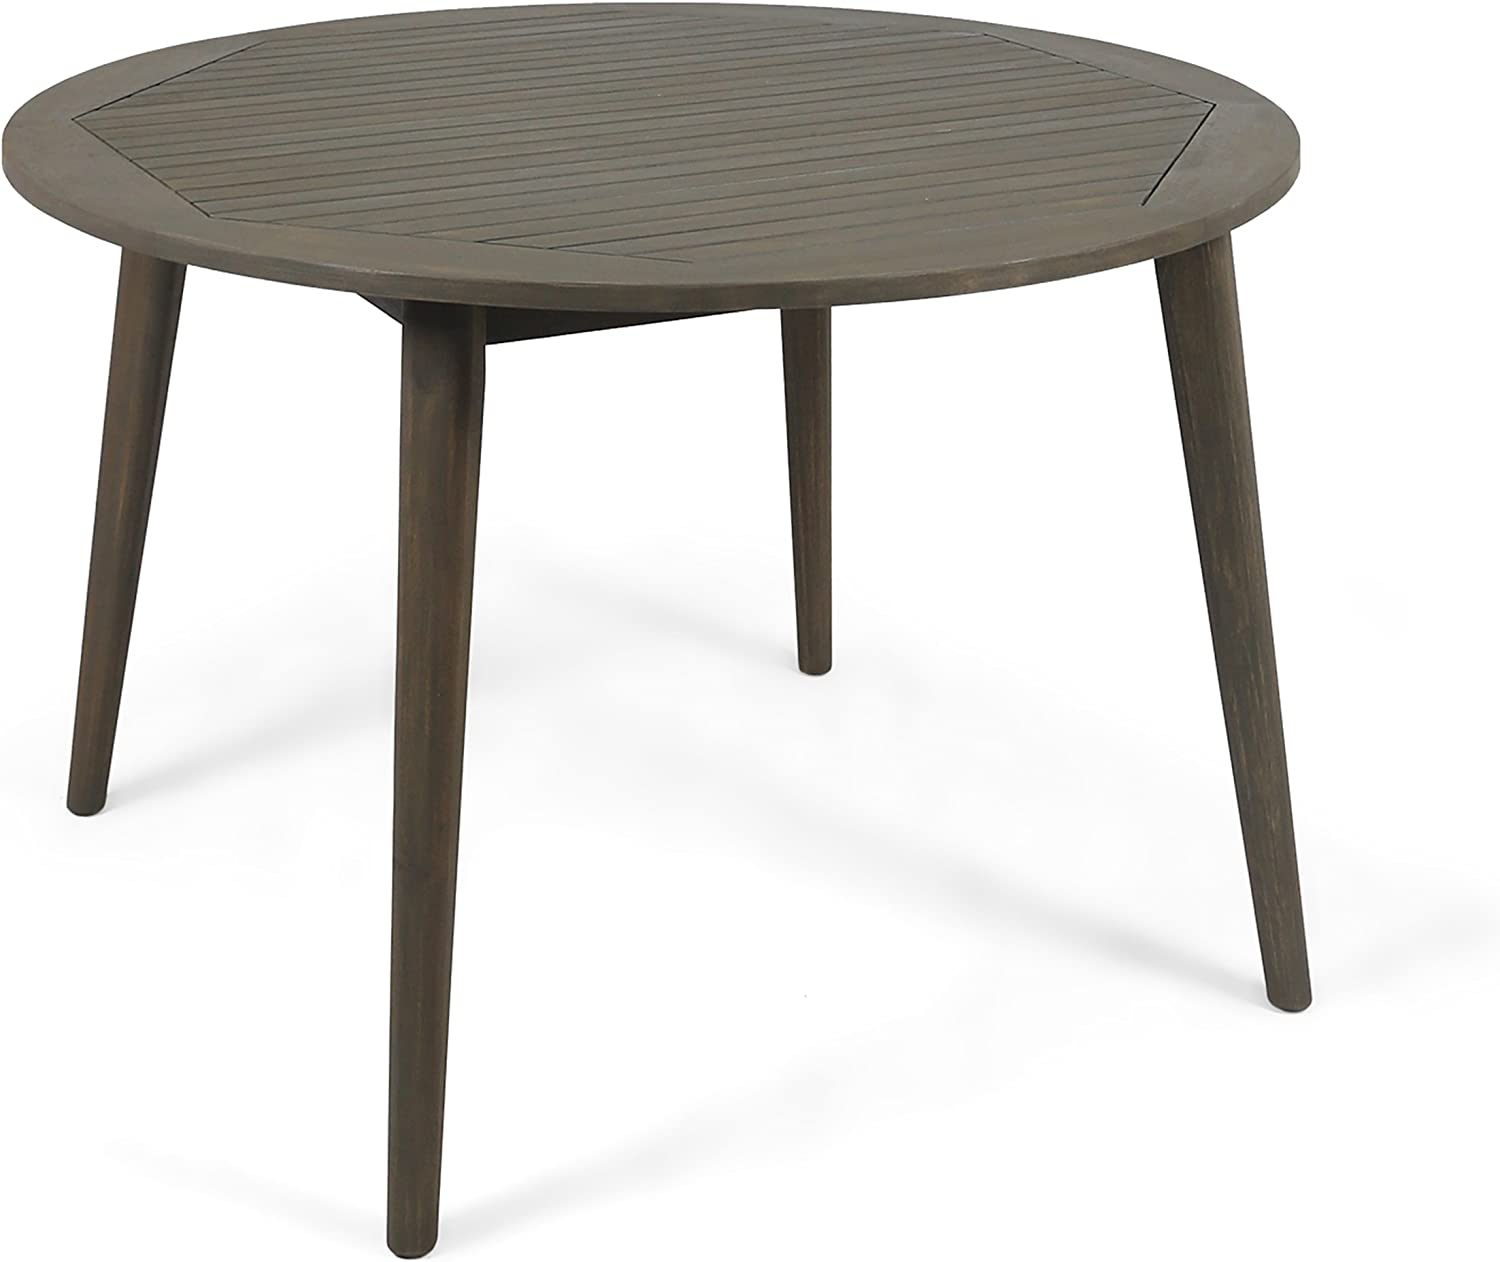 Christopher Knight Home 305154 Nick Outdoor Acacia Wood Round Dining Table, Gray Finish : Garden & Outdoor